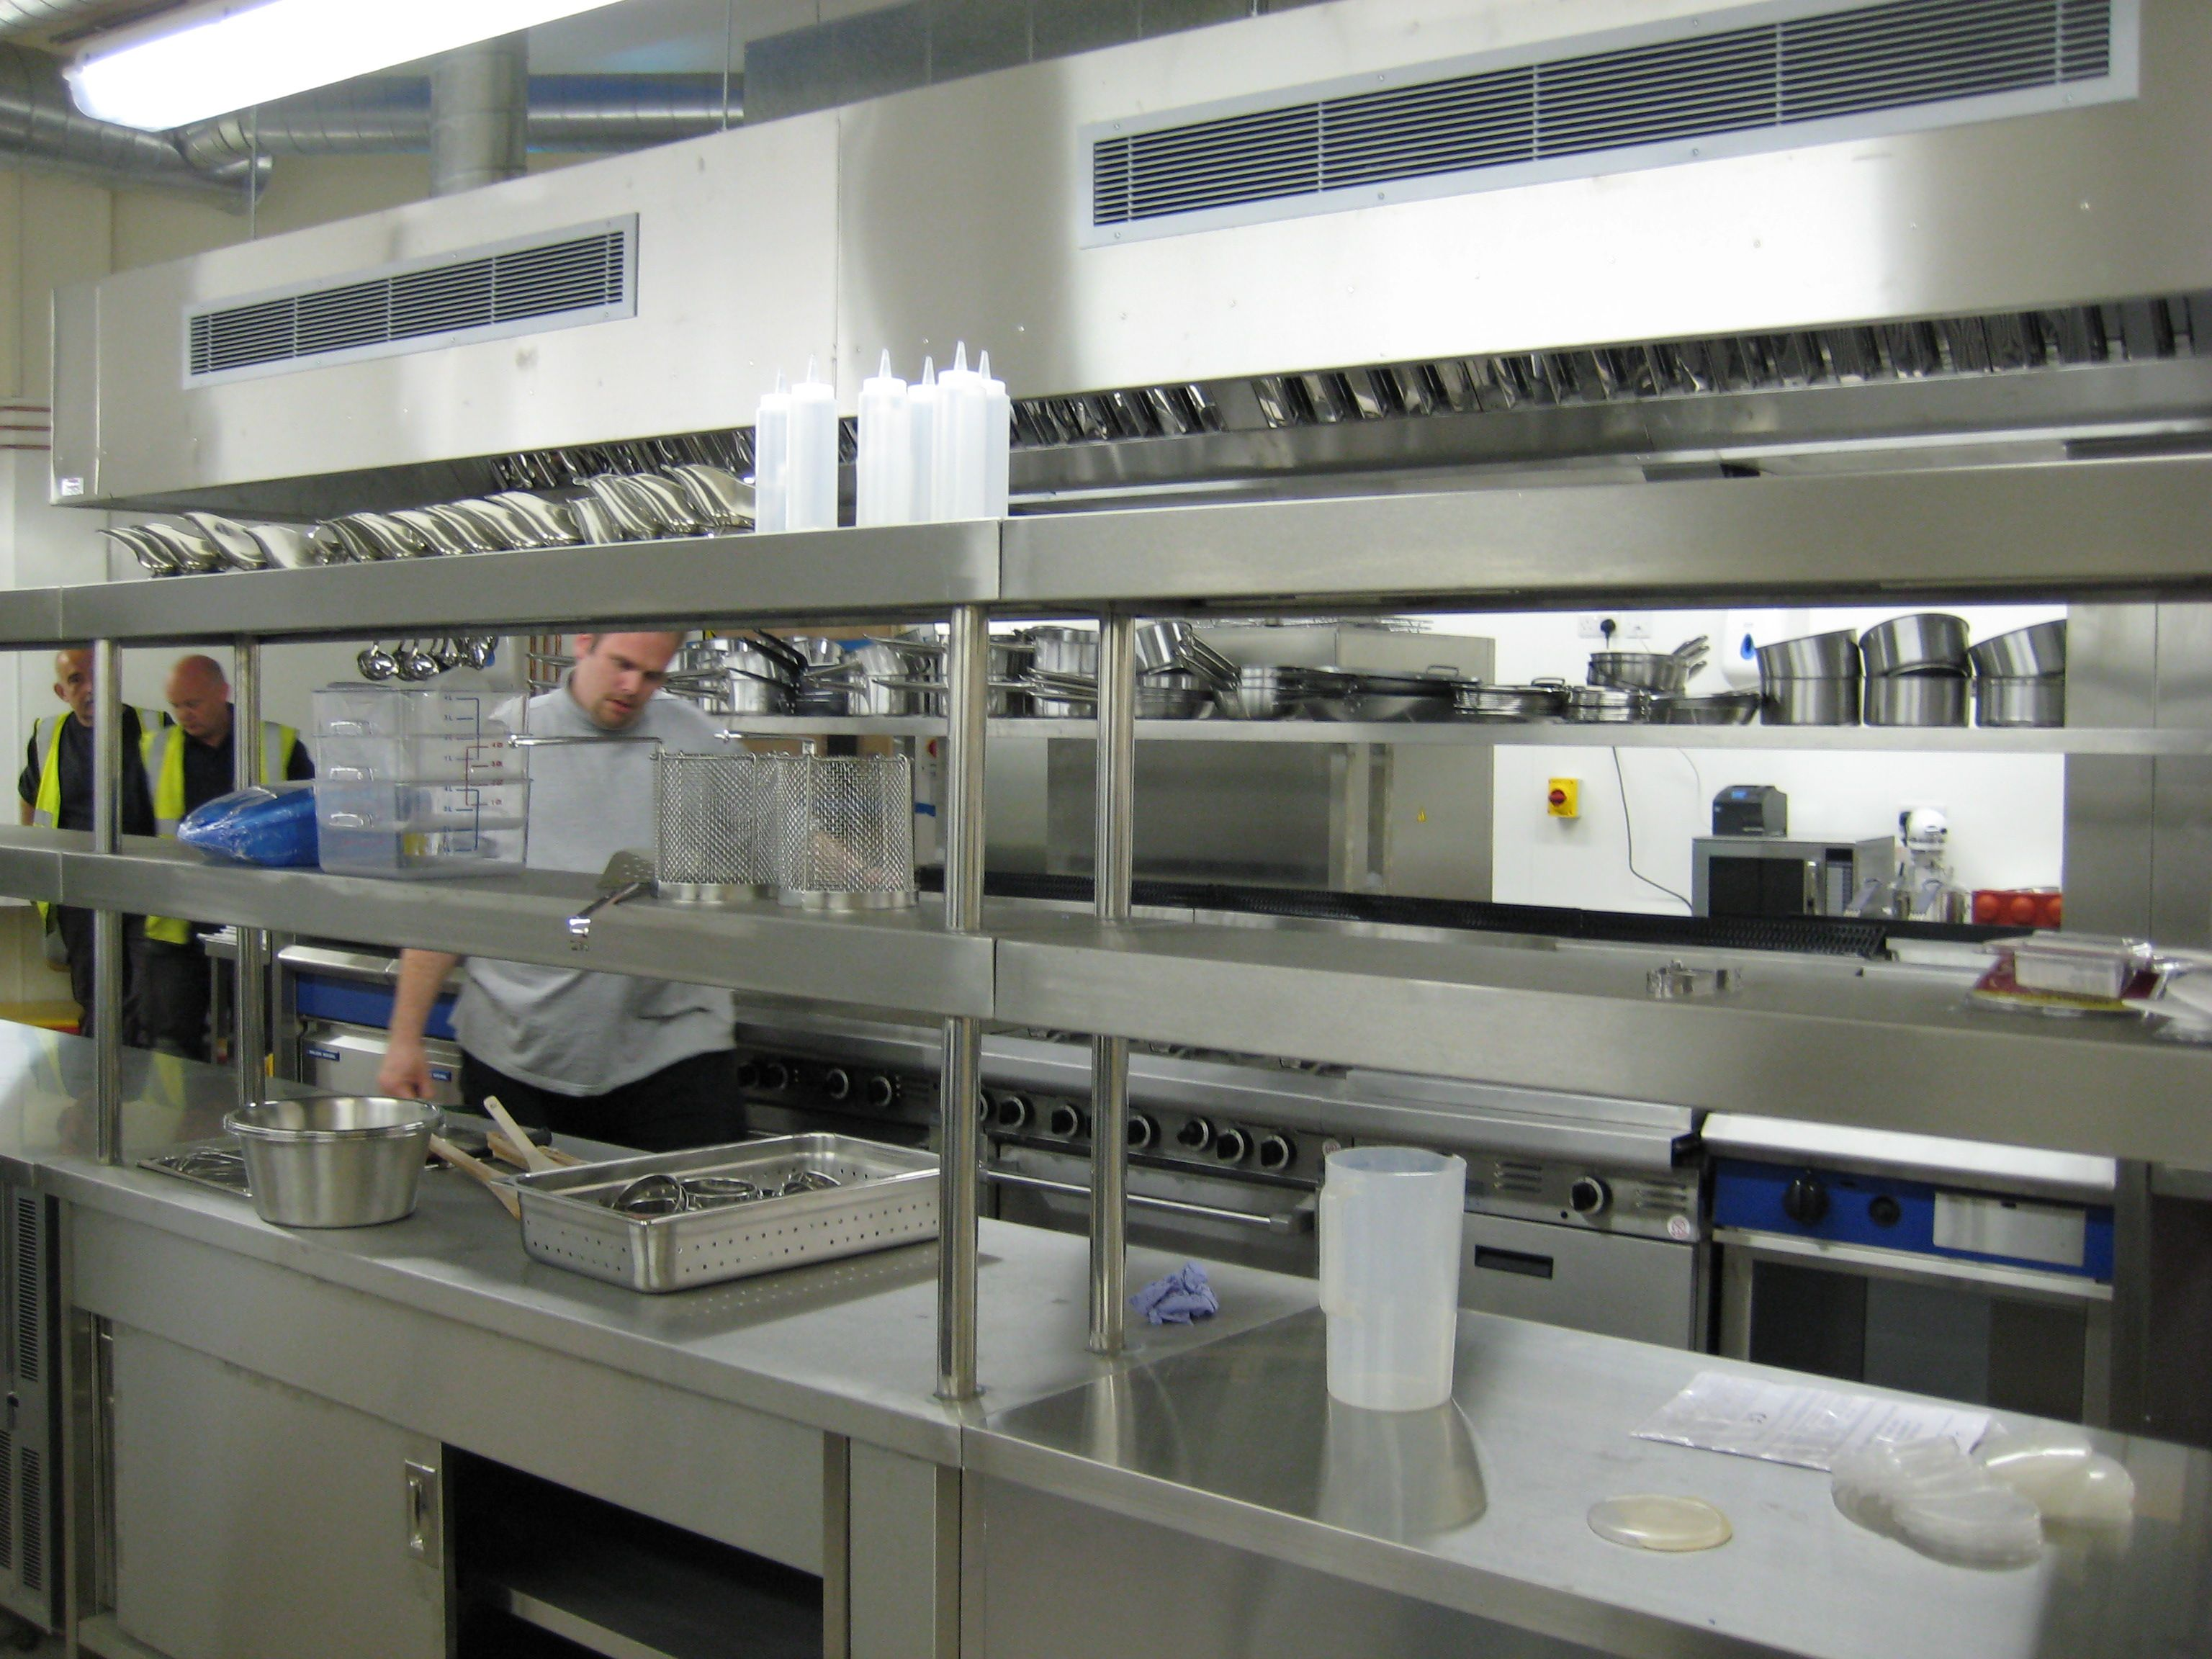 mast counter kitchen curry currypointhotdisplay equipment commercial used